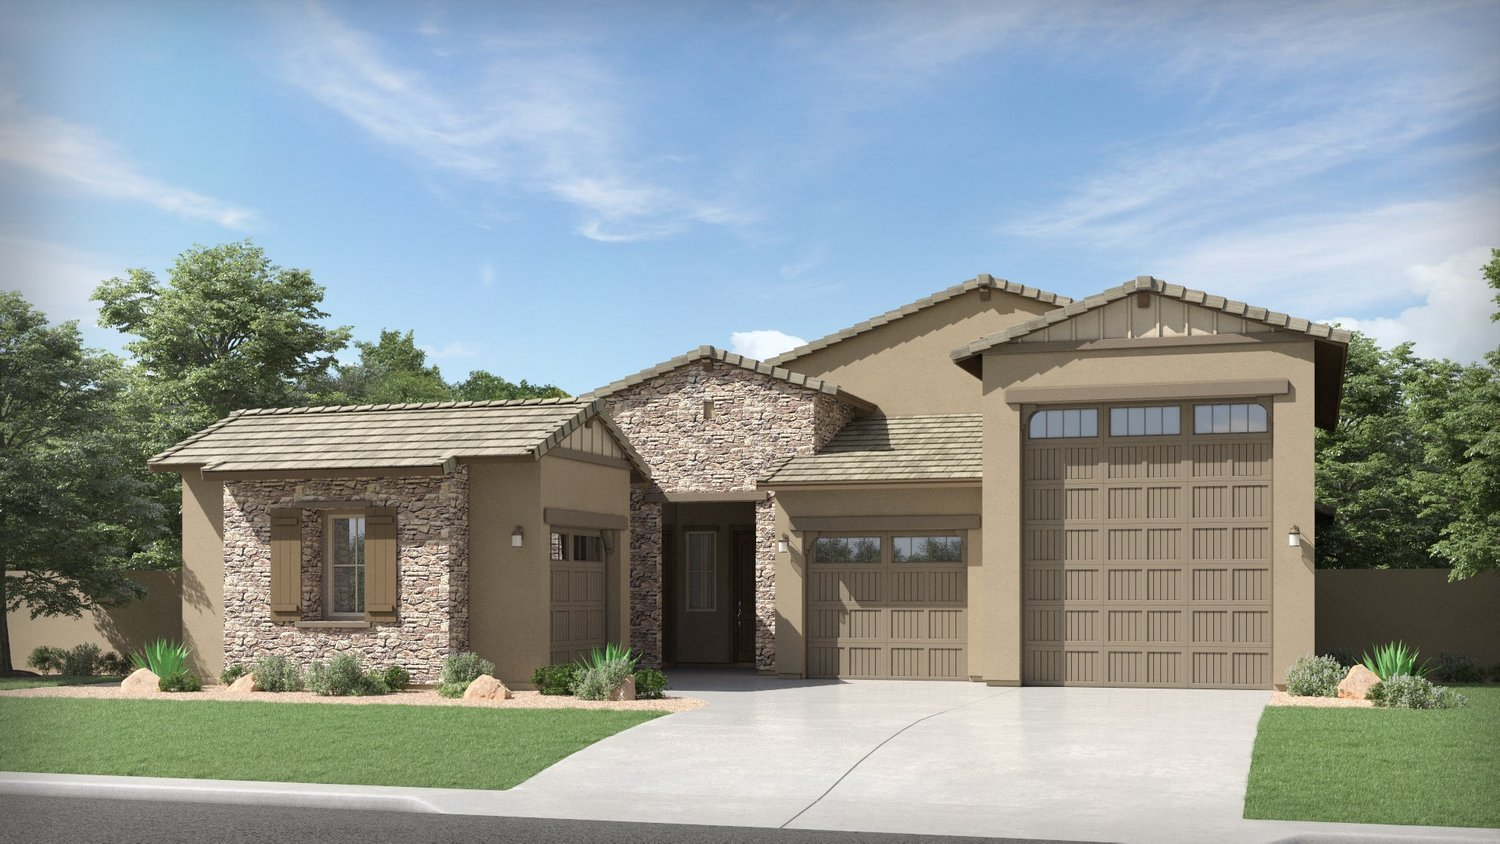 Lennar among latest homebuilders altering plans in Valley